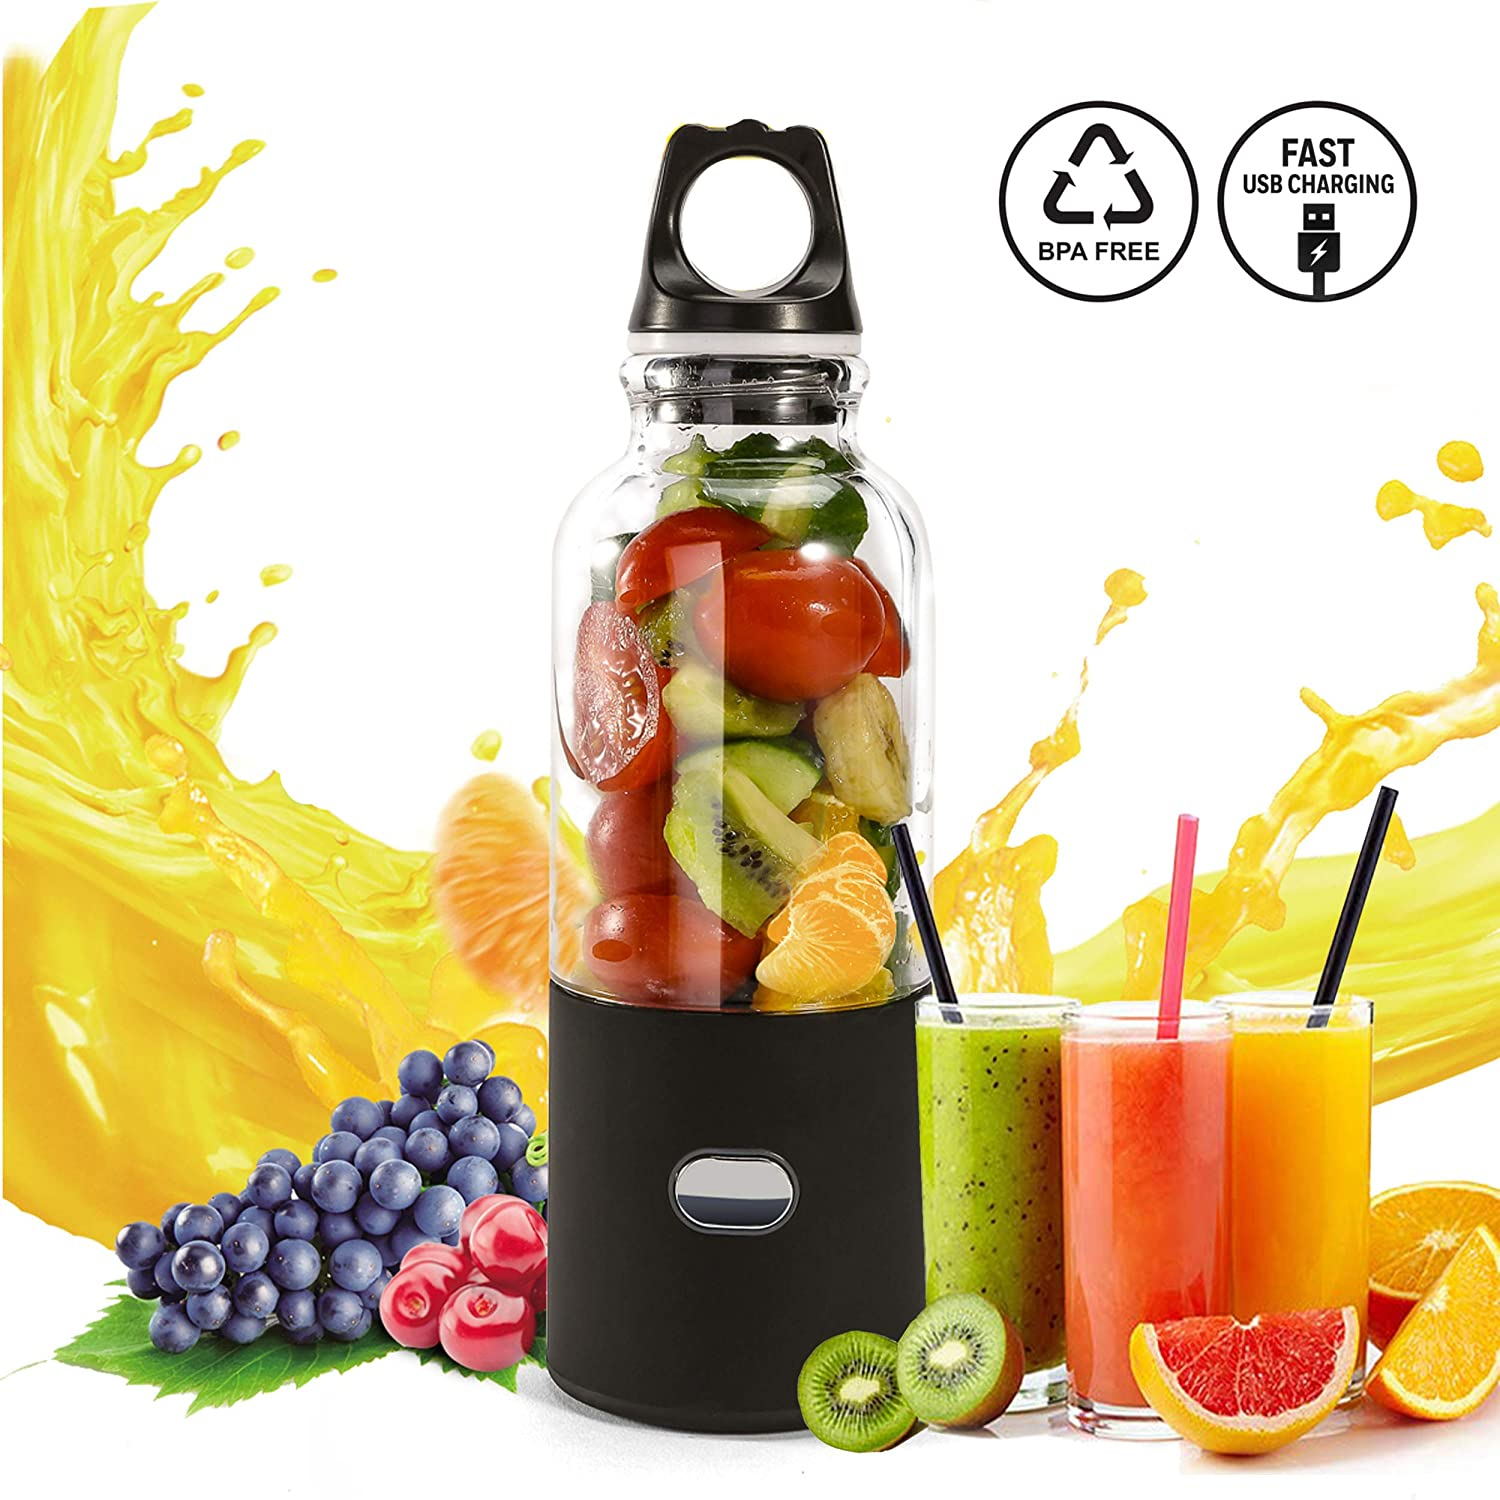 Portable Personal Blender, USB Rechargeable Small Blender Juicer Cup for Travel Outdoor Activity, Fruit Shakes and Smoothies Mixer with 6 blades 500ml 4000mAh